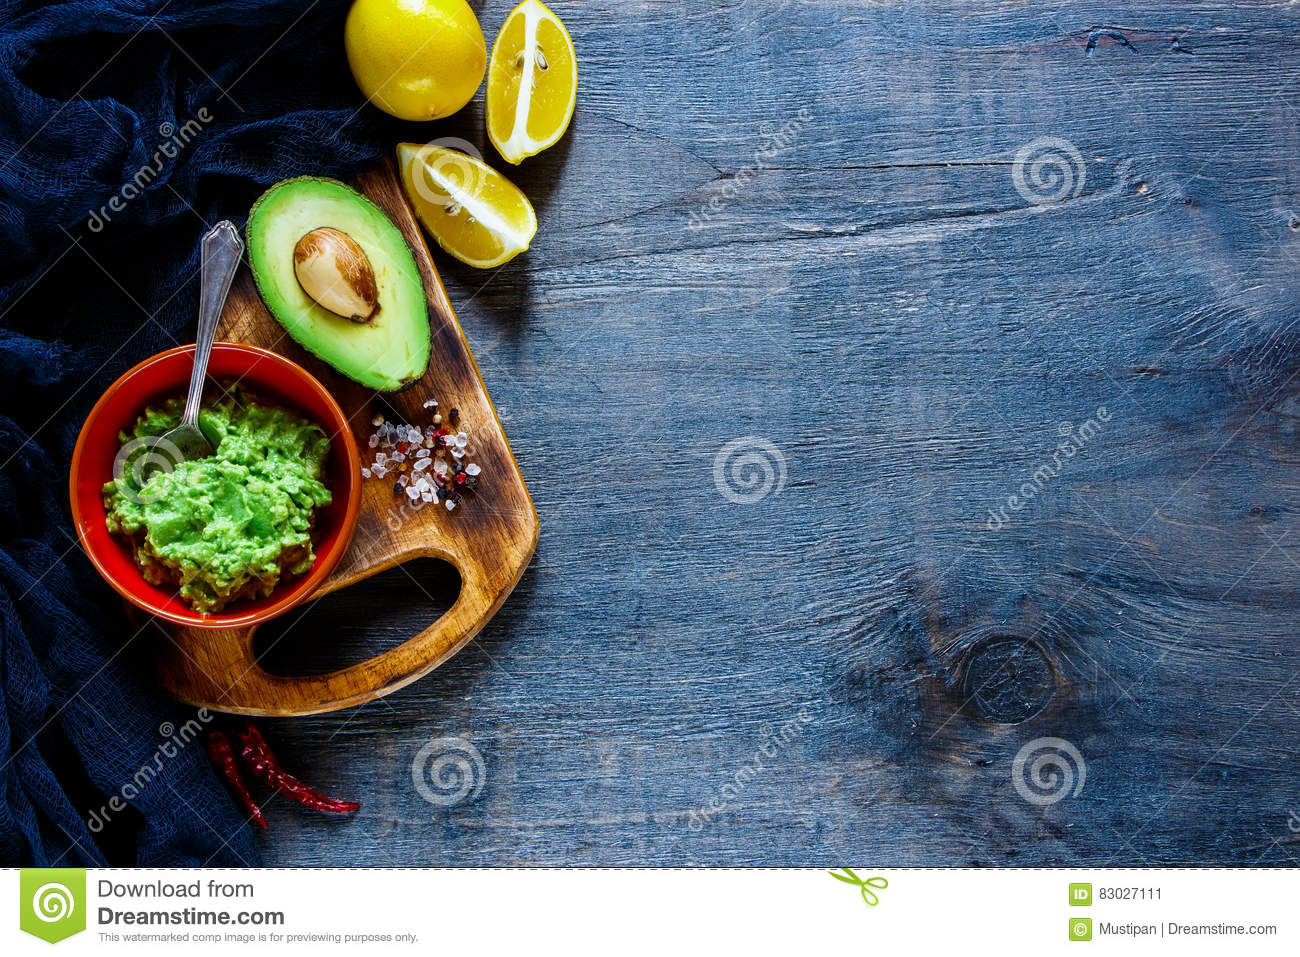 Sauce guacamole in bowl stock image. Image of homemade - 83027111